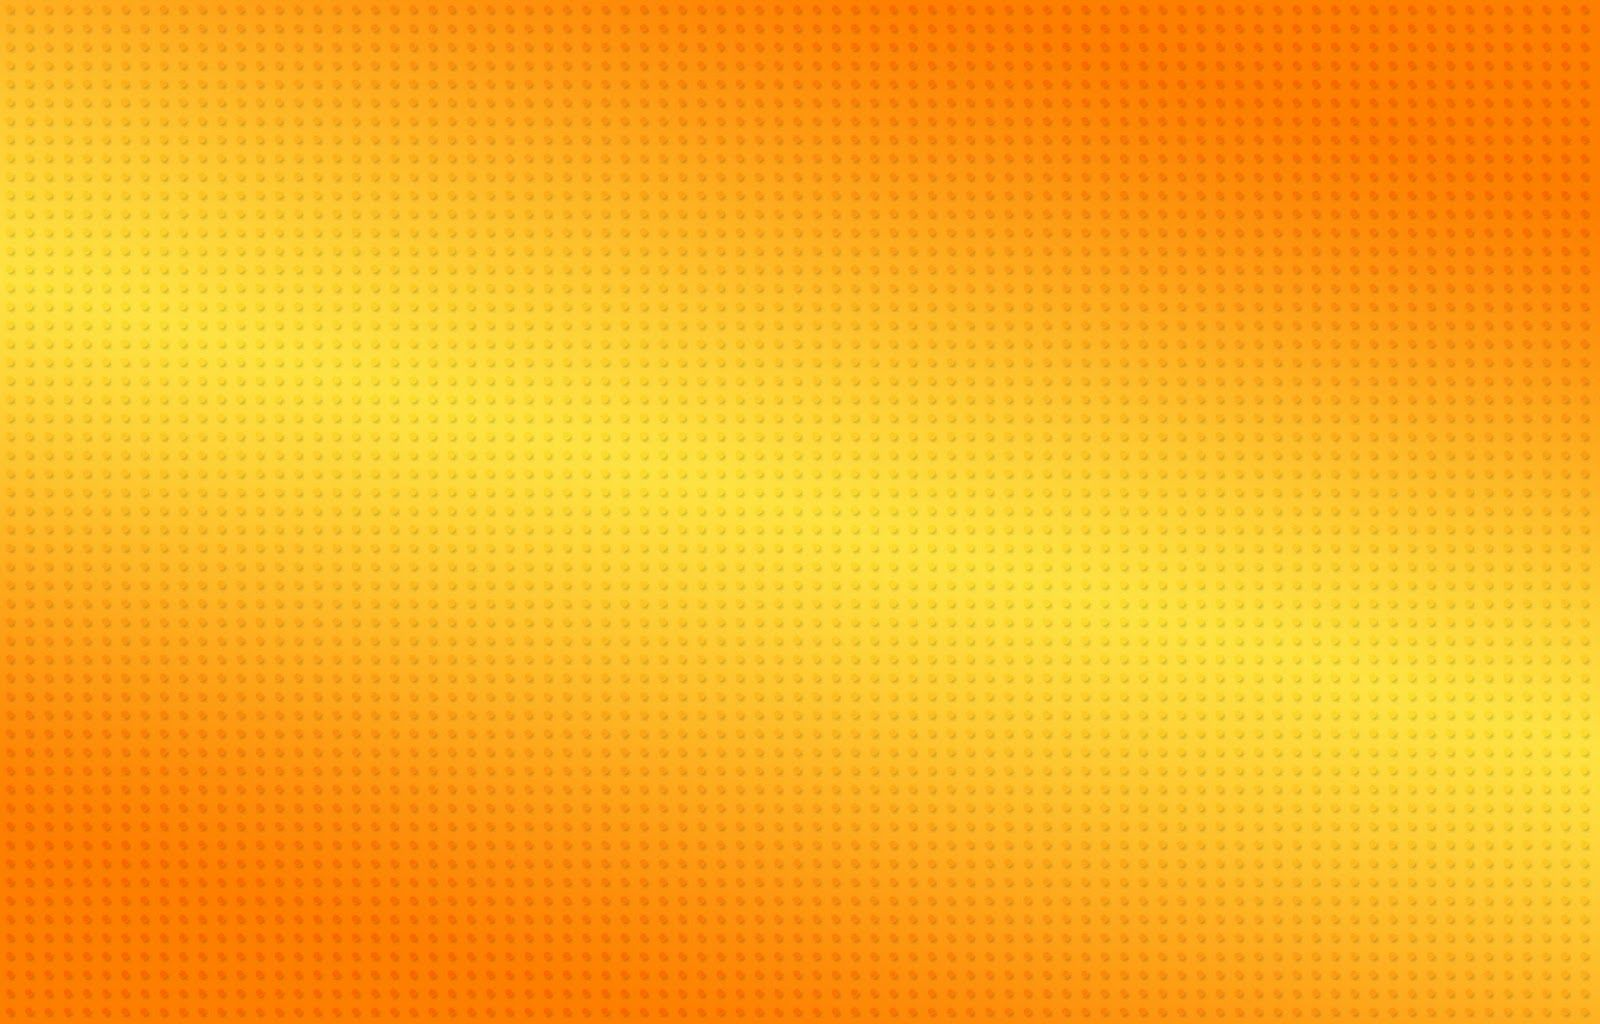 Keywords Plain Orange Wallpaper Hd And Tags